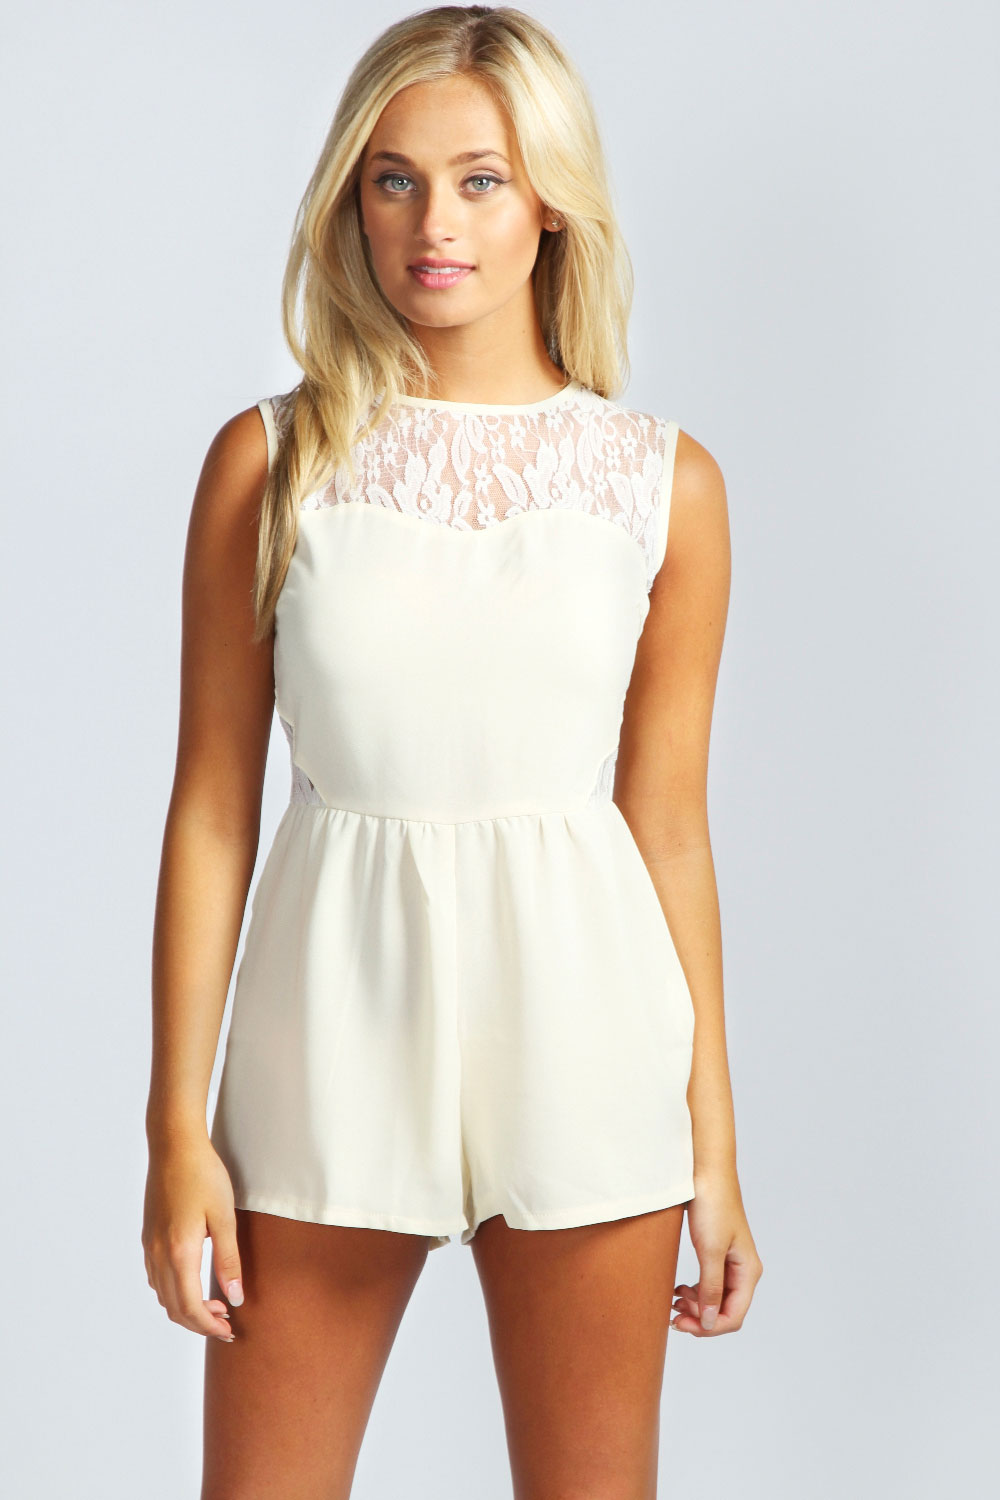 The playsuit for women are not just limited to kids wear and they have made their way to the women's fashion as well. They are an excellent addition to the casual wardrobe. They are extremely comfortable and are a perfect choice for having a relaxing time.